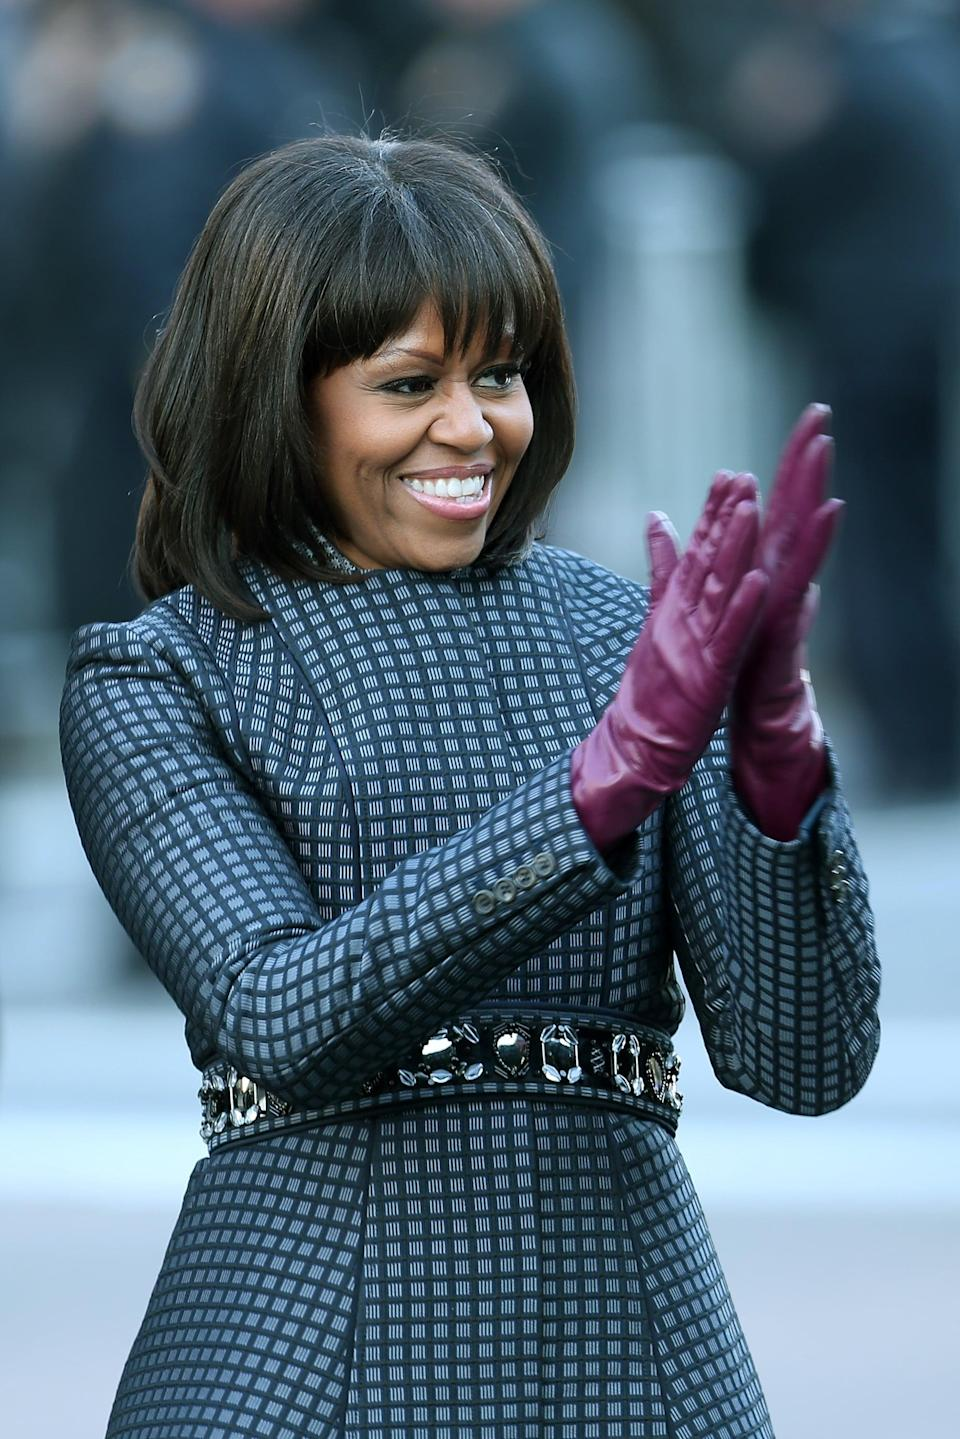 WASHINGTON, DC - JANUARY 21:  First lady Michelle Obama walks the route as the presidential inaugural parade winds through the nation's capital January 21, 2013 in Washington, DC. Barack Obama was re-elected for a second term as President of the United States.  (Photo by Chip Somodevilla/Getty Images)